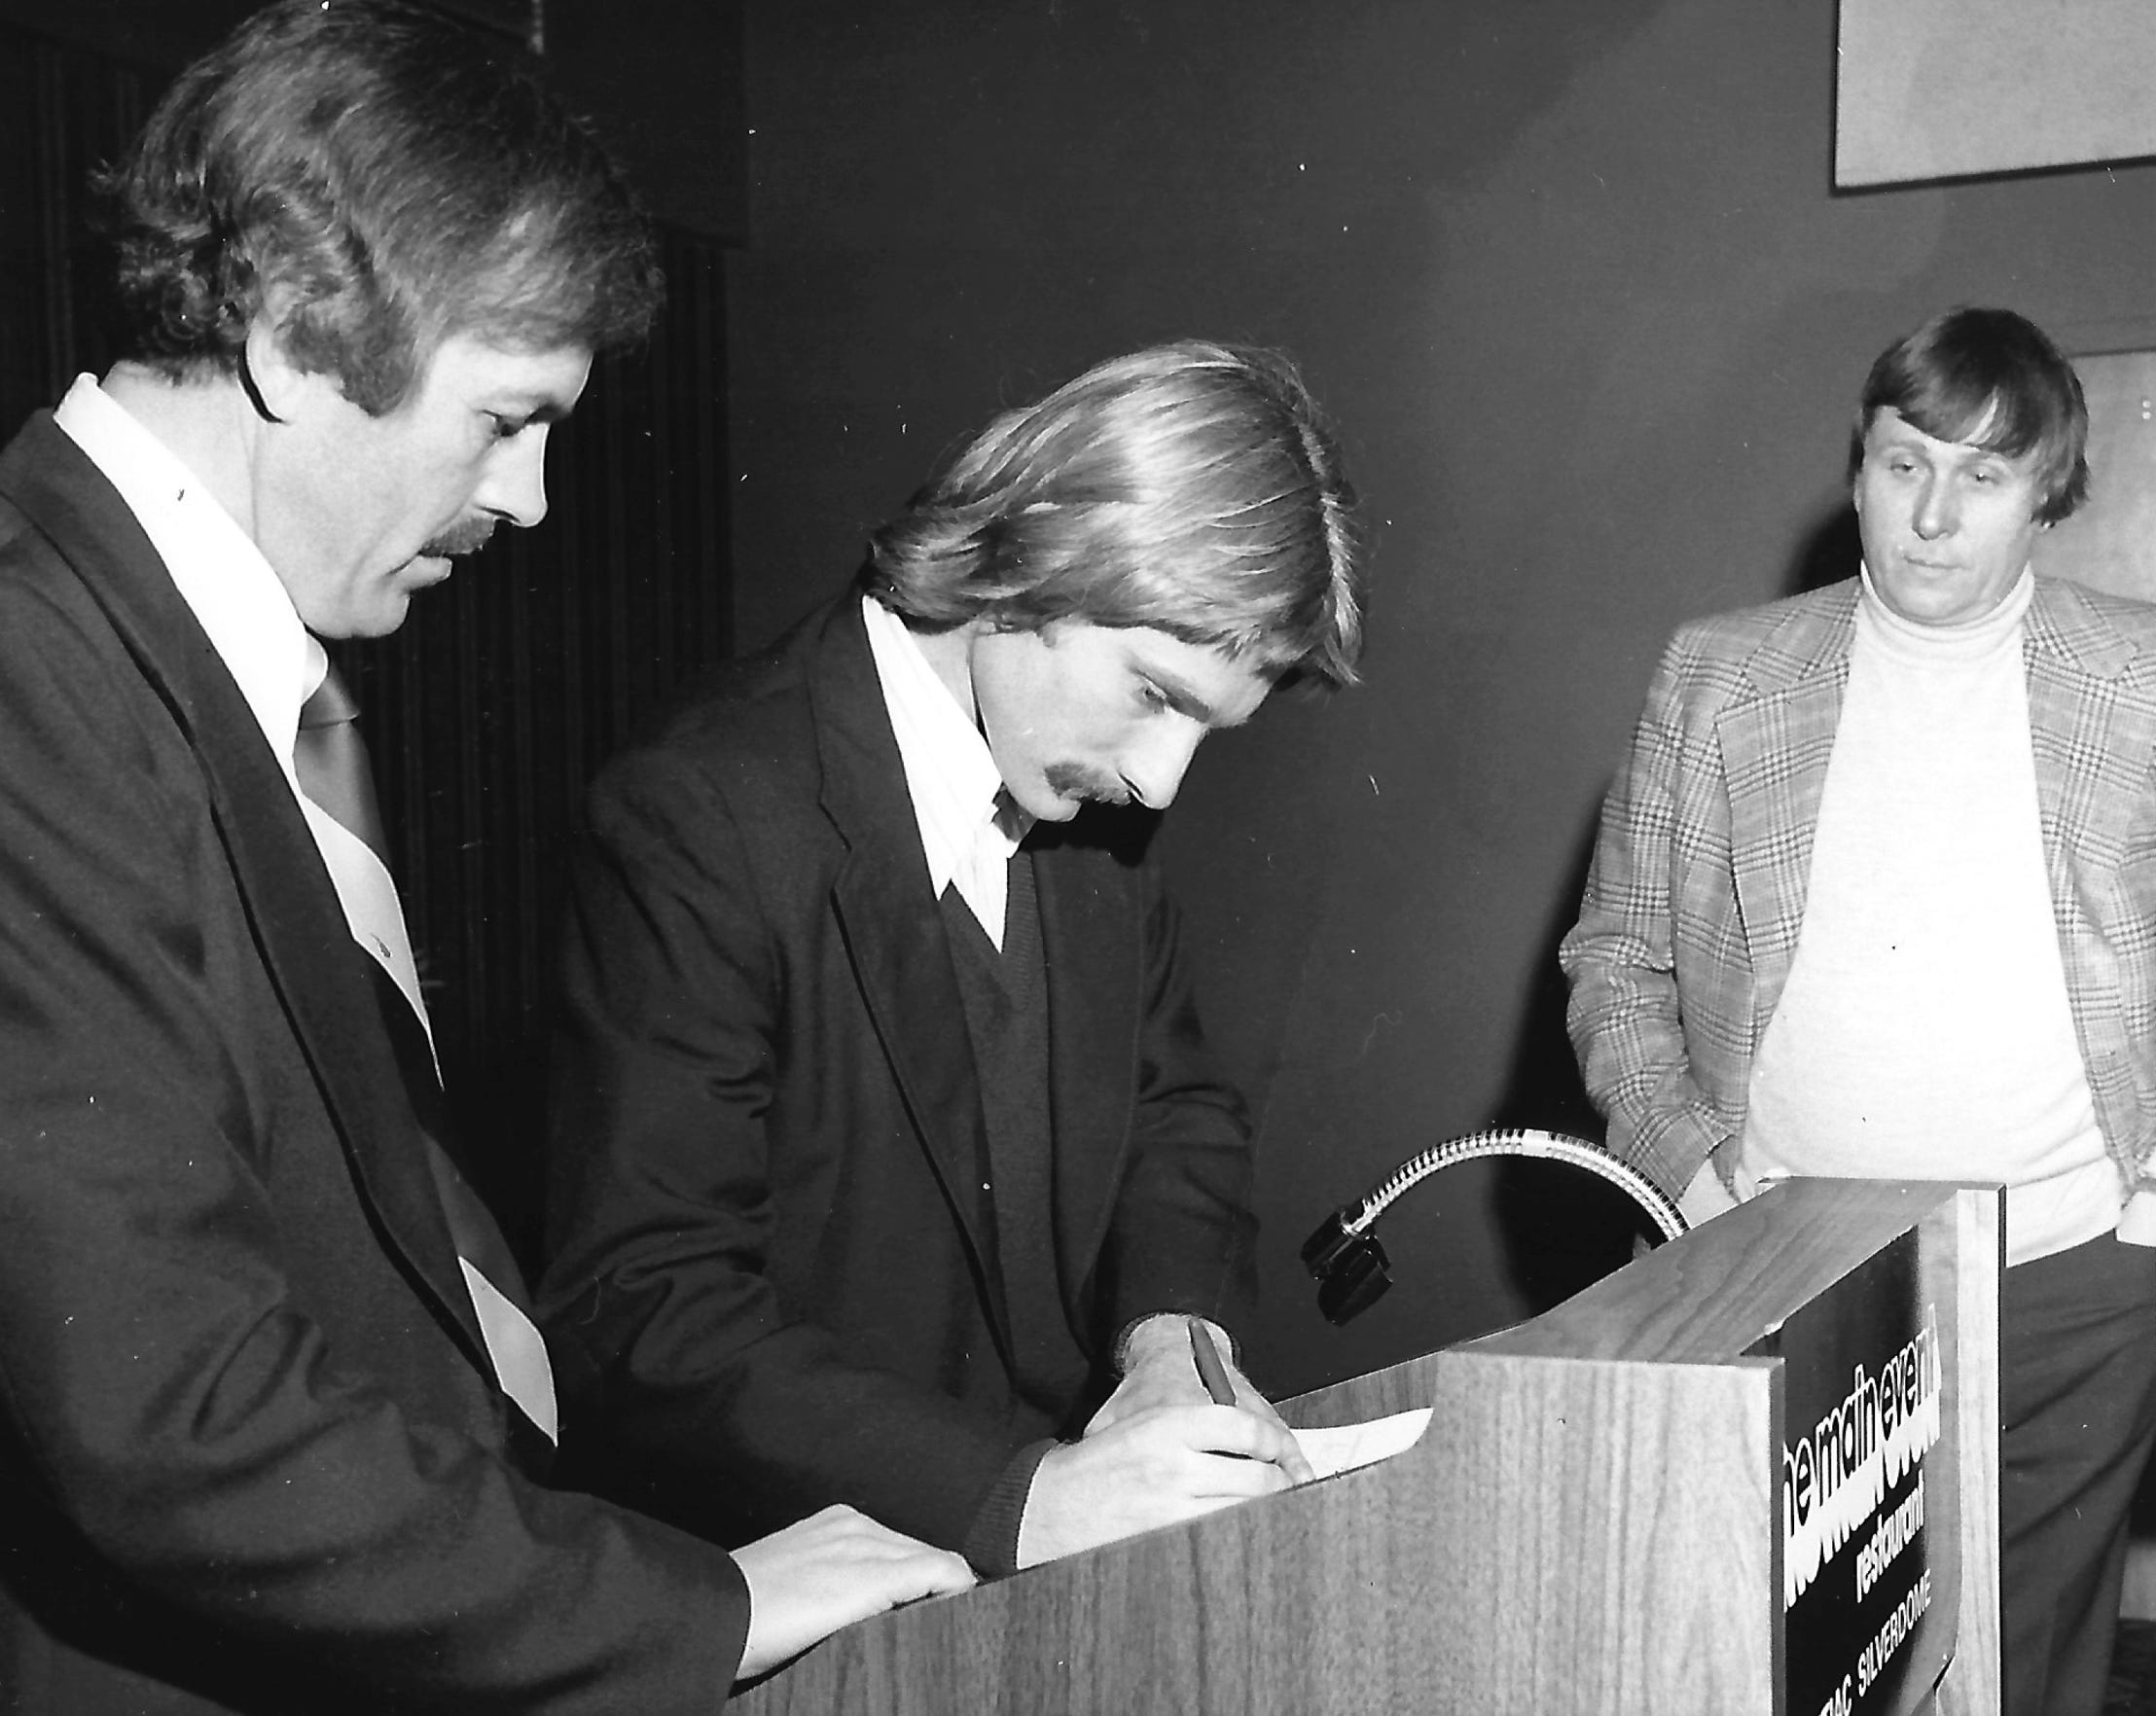 Detroit Express co-owner Roger Faulkner, right, and public relations director Gordon Preston attend the news conference announcing the signing of defender Paul Hunter from the New York Cosmos in 1978.